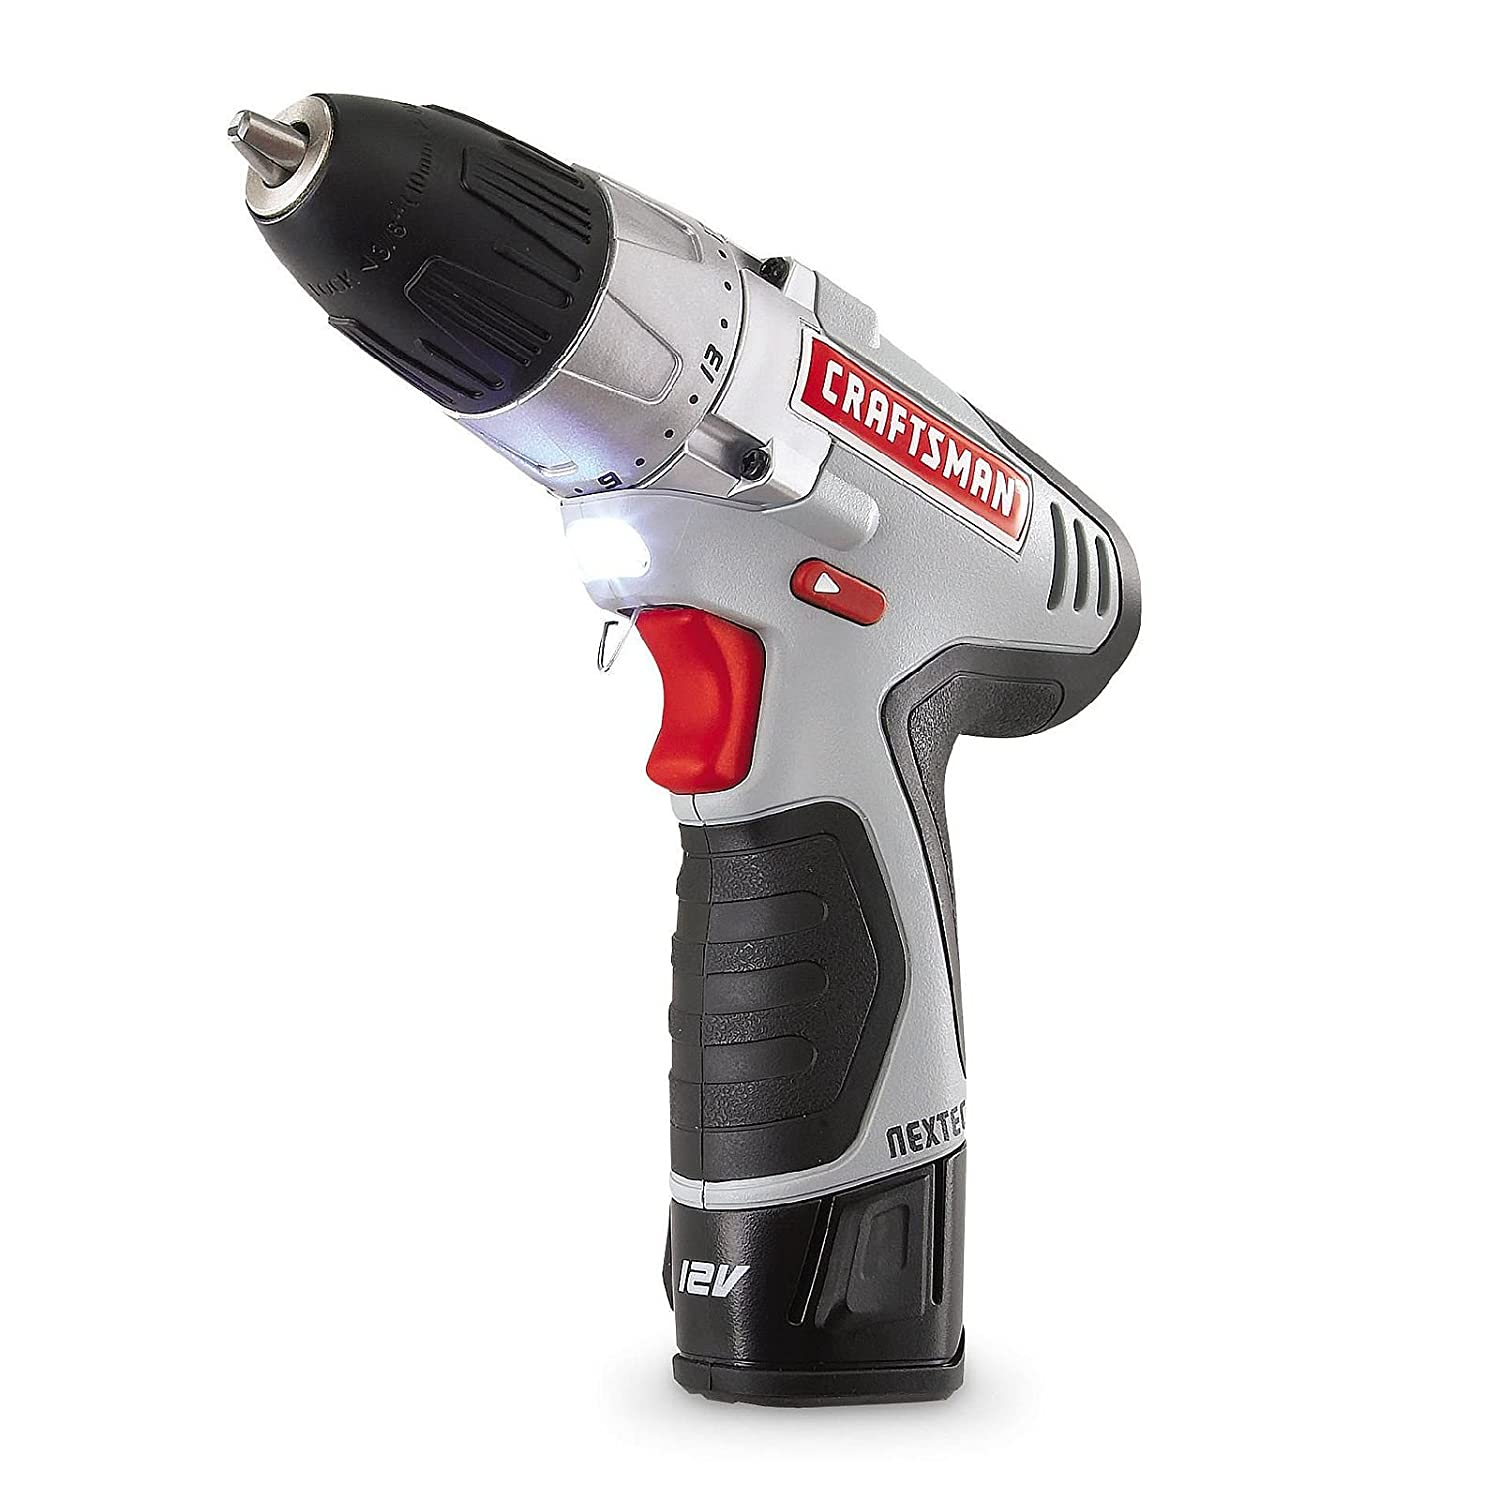 Craftsman N17586 NEXTEC 12.0V Lithium-Ion Drill Driver Kit with Ergonomic Handle and ENERGY STAR Qualified